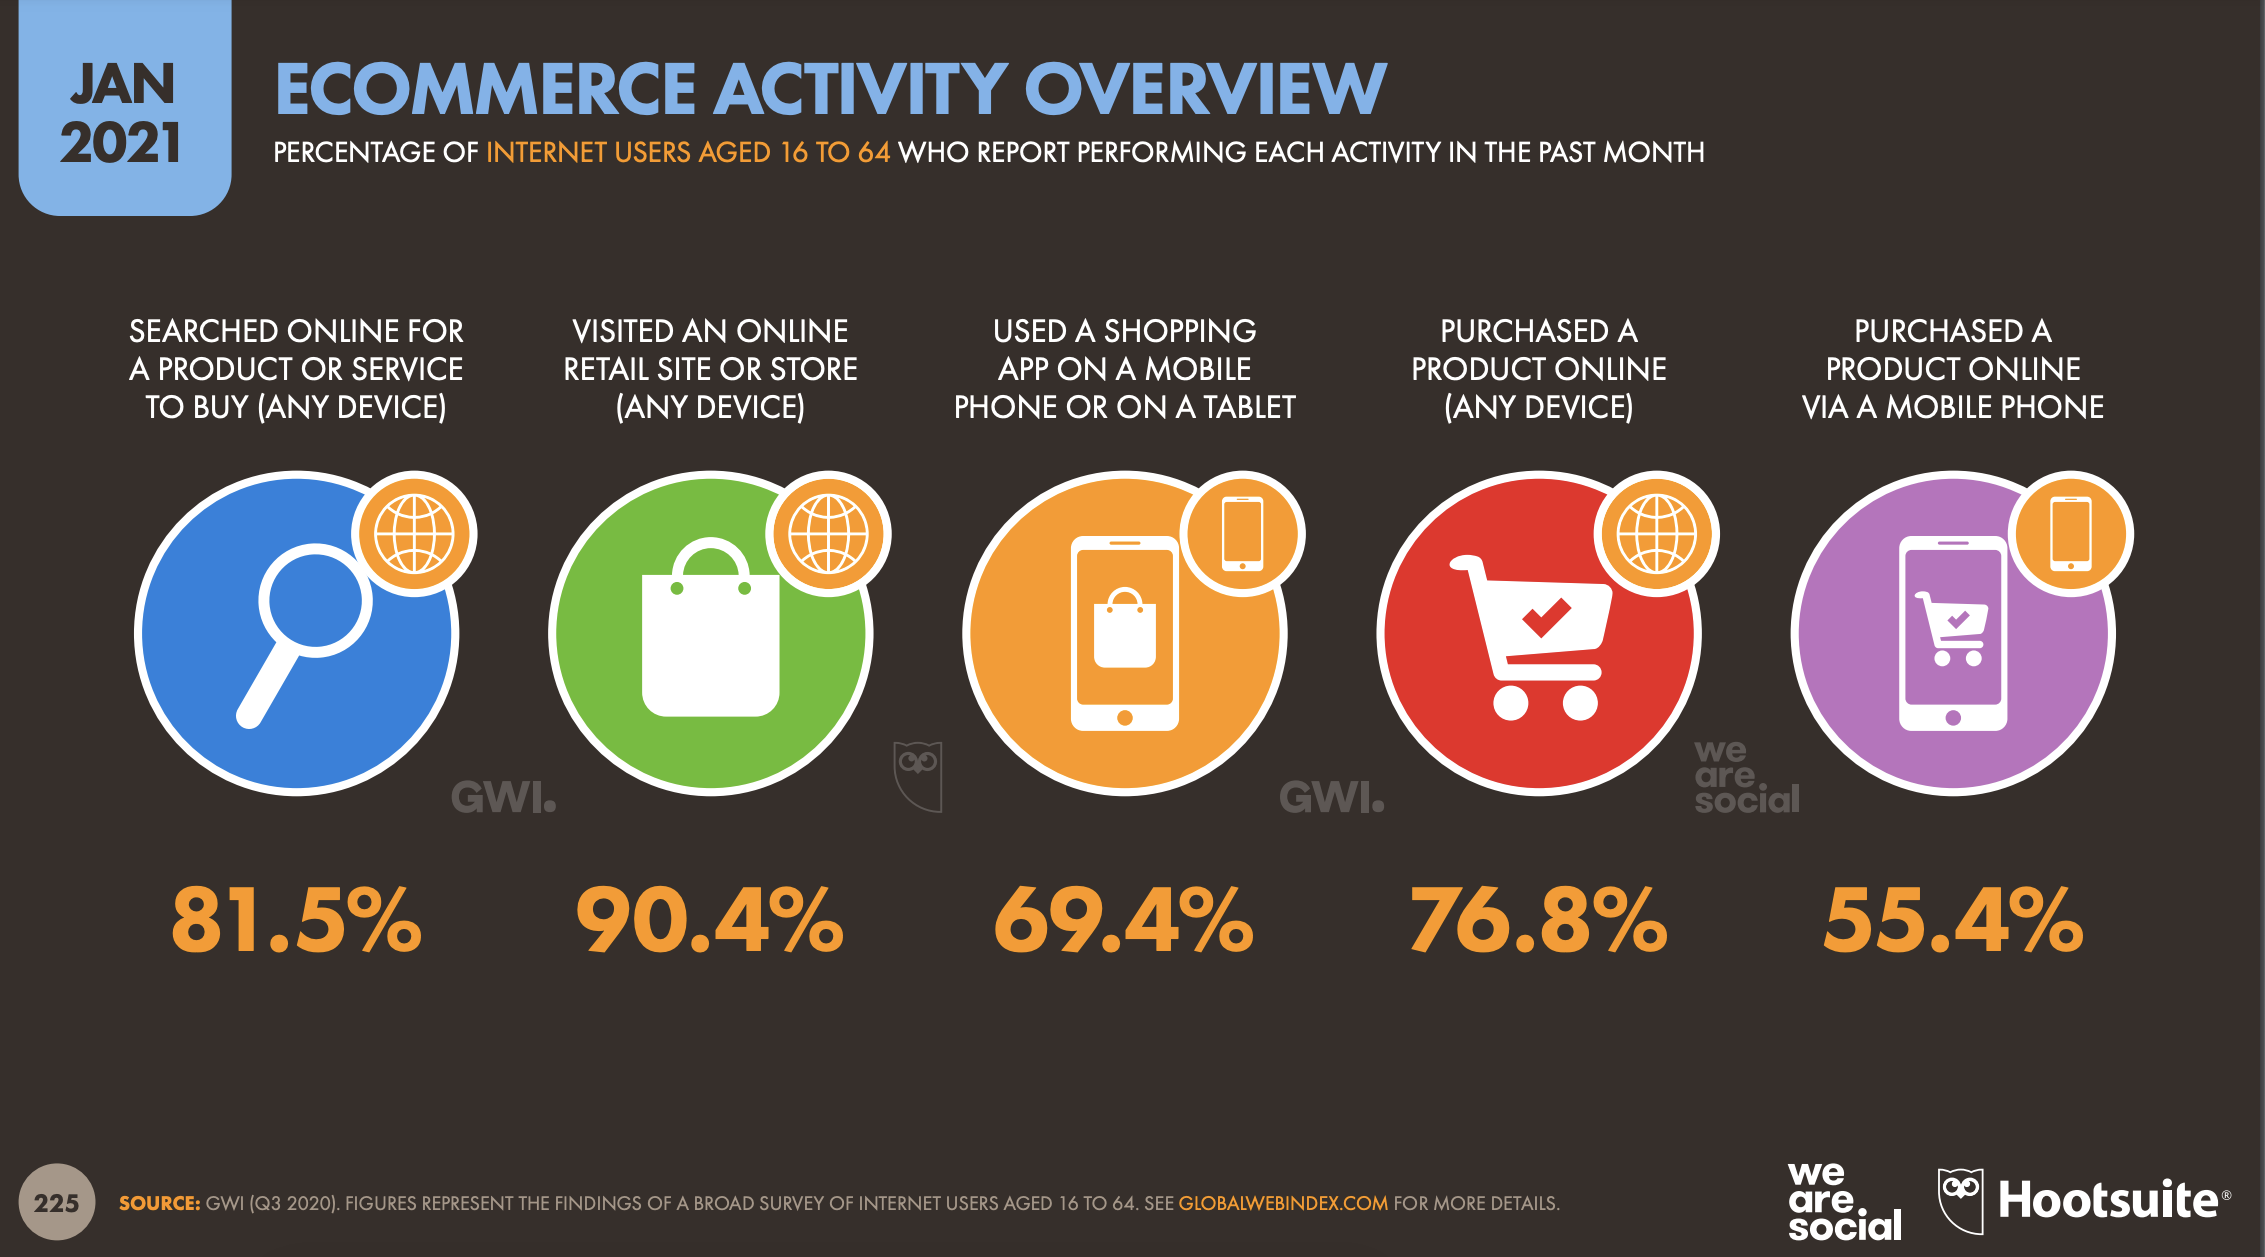 Overview of e-commerce activities